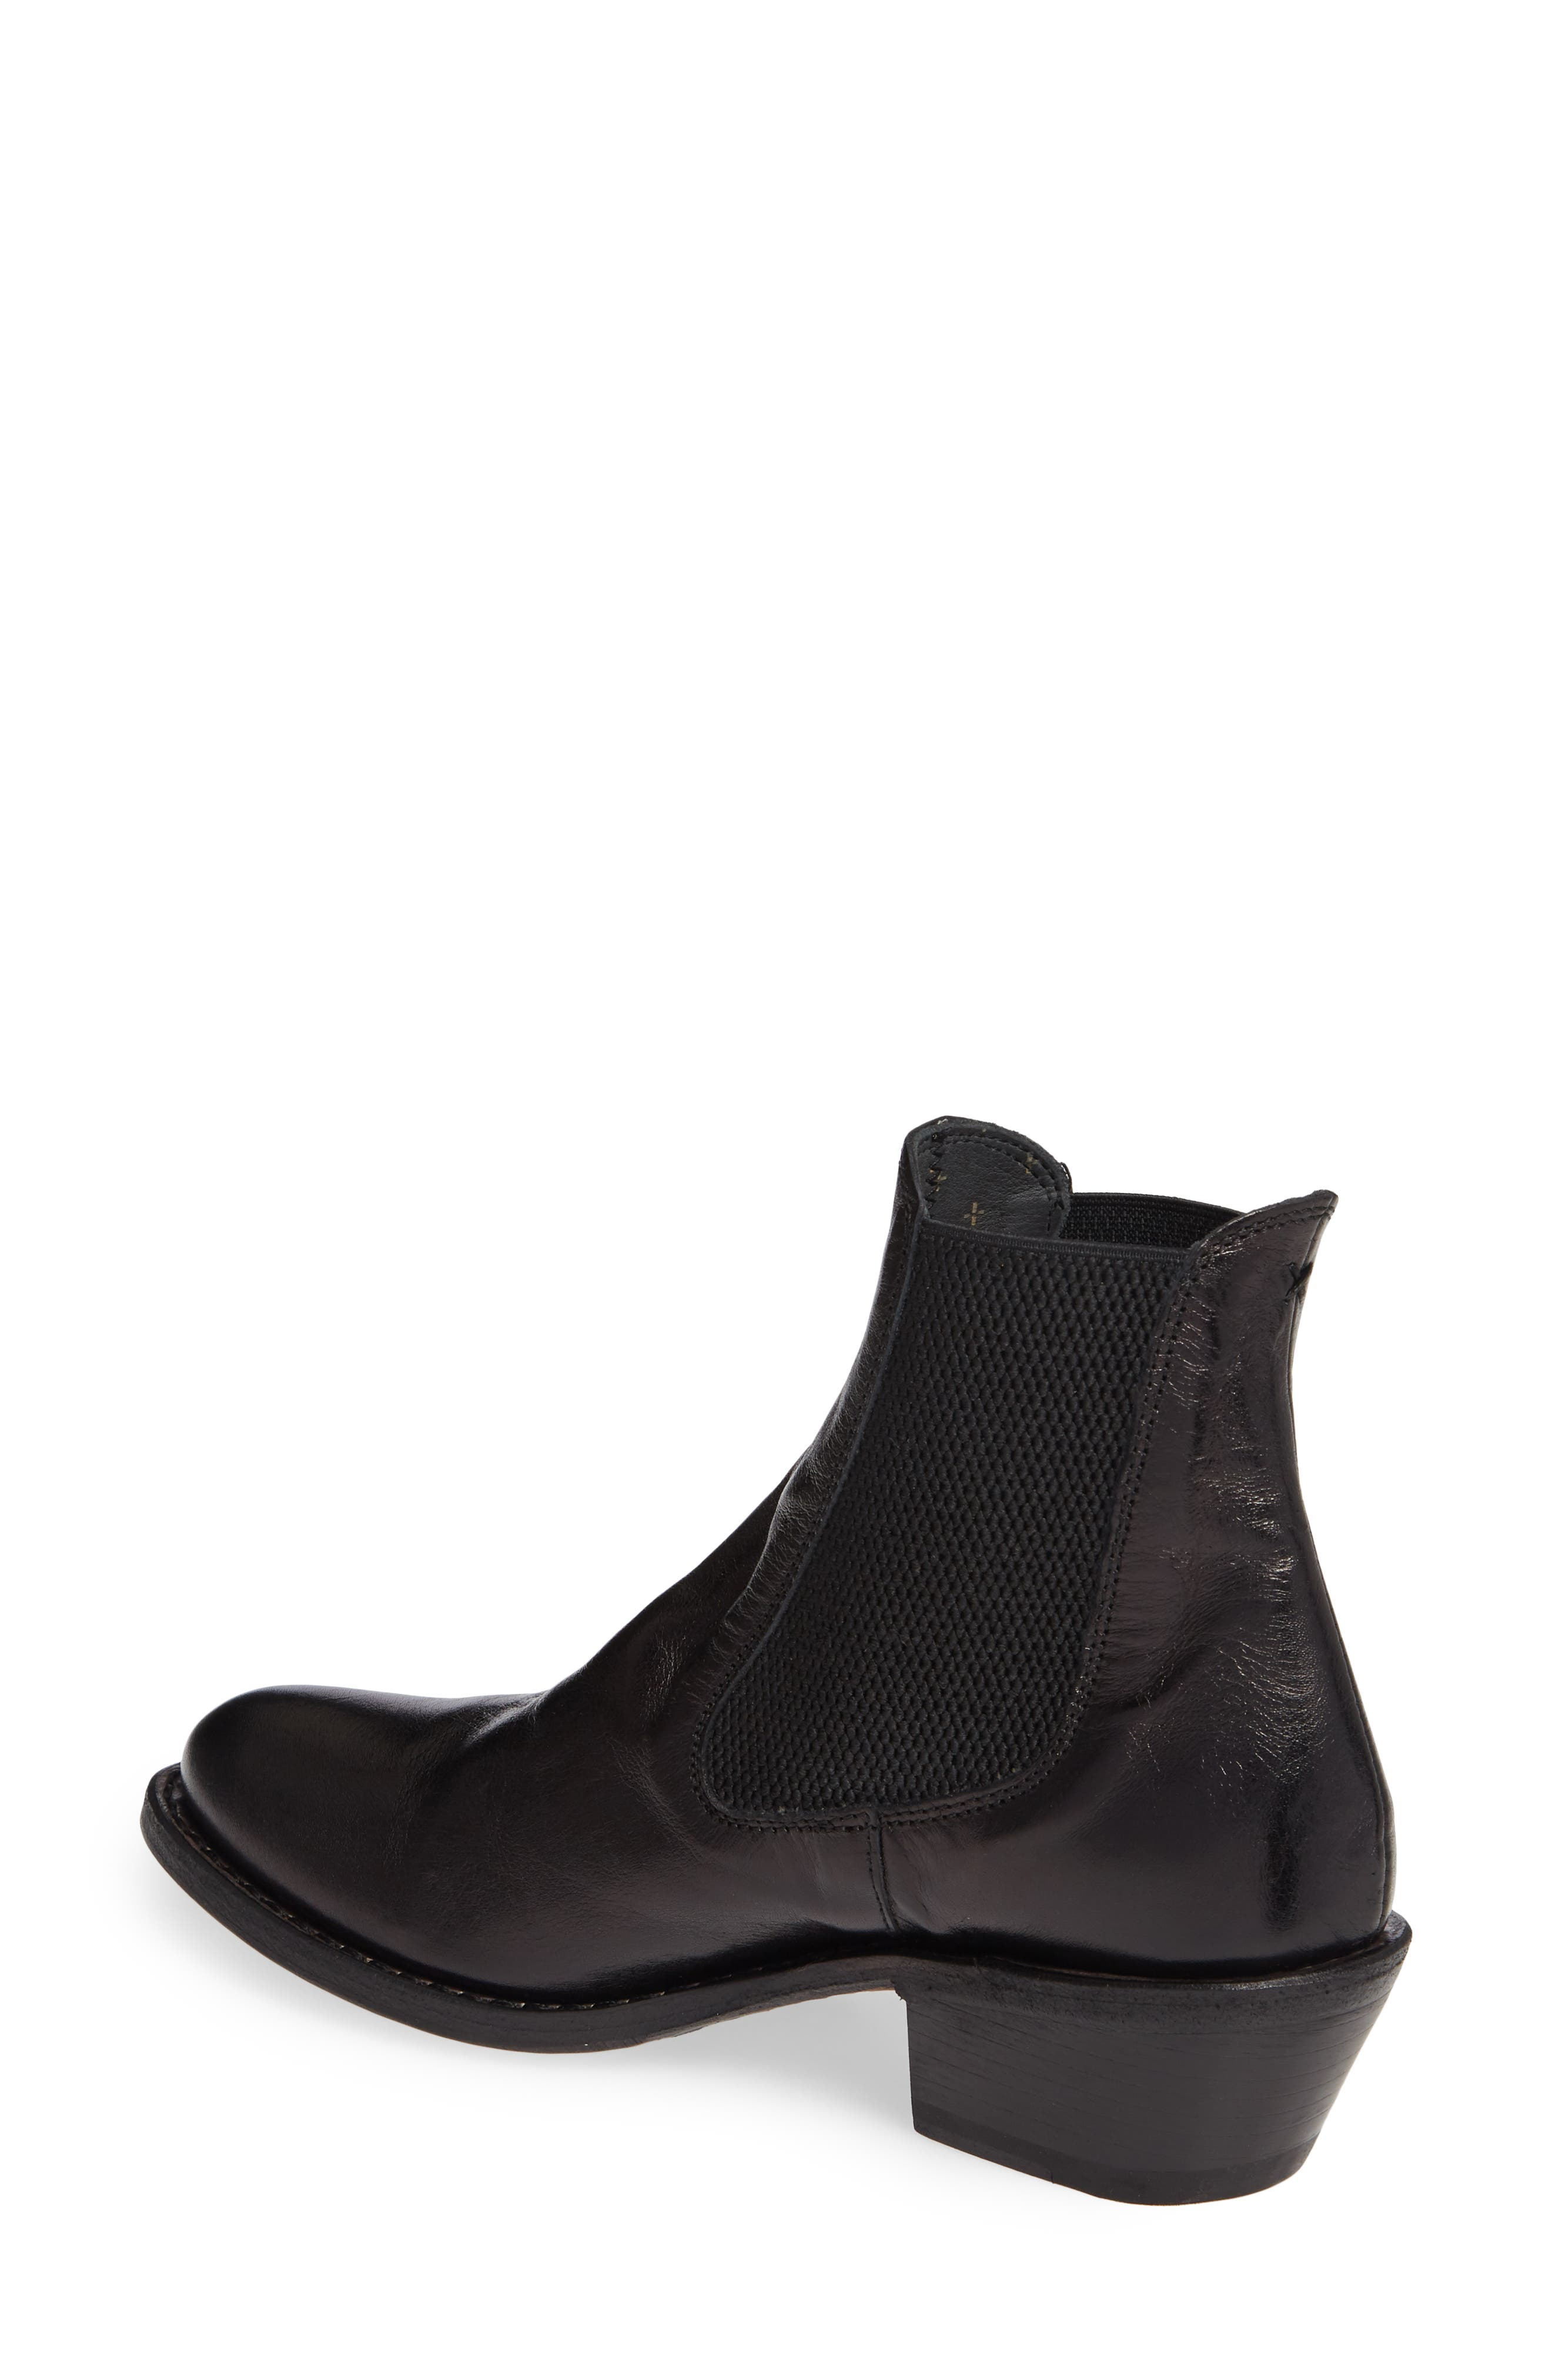 Roxy Boot,                             Alternate thumbnail 2, color,                             BLACK LEATHER